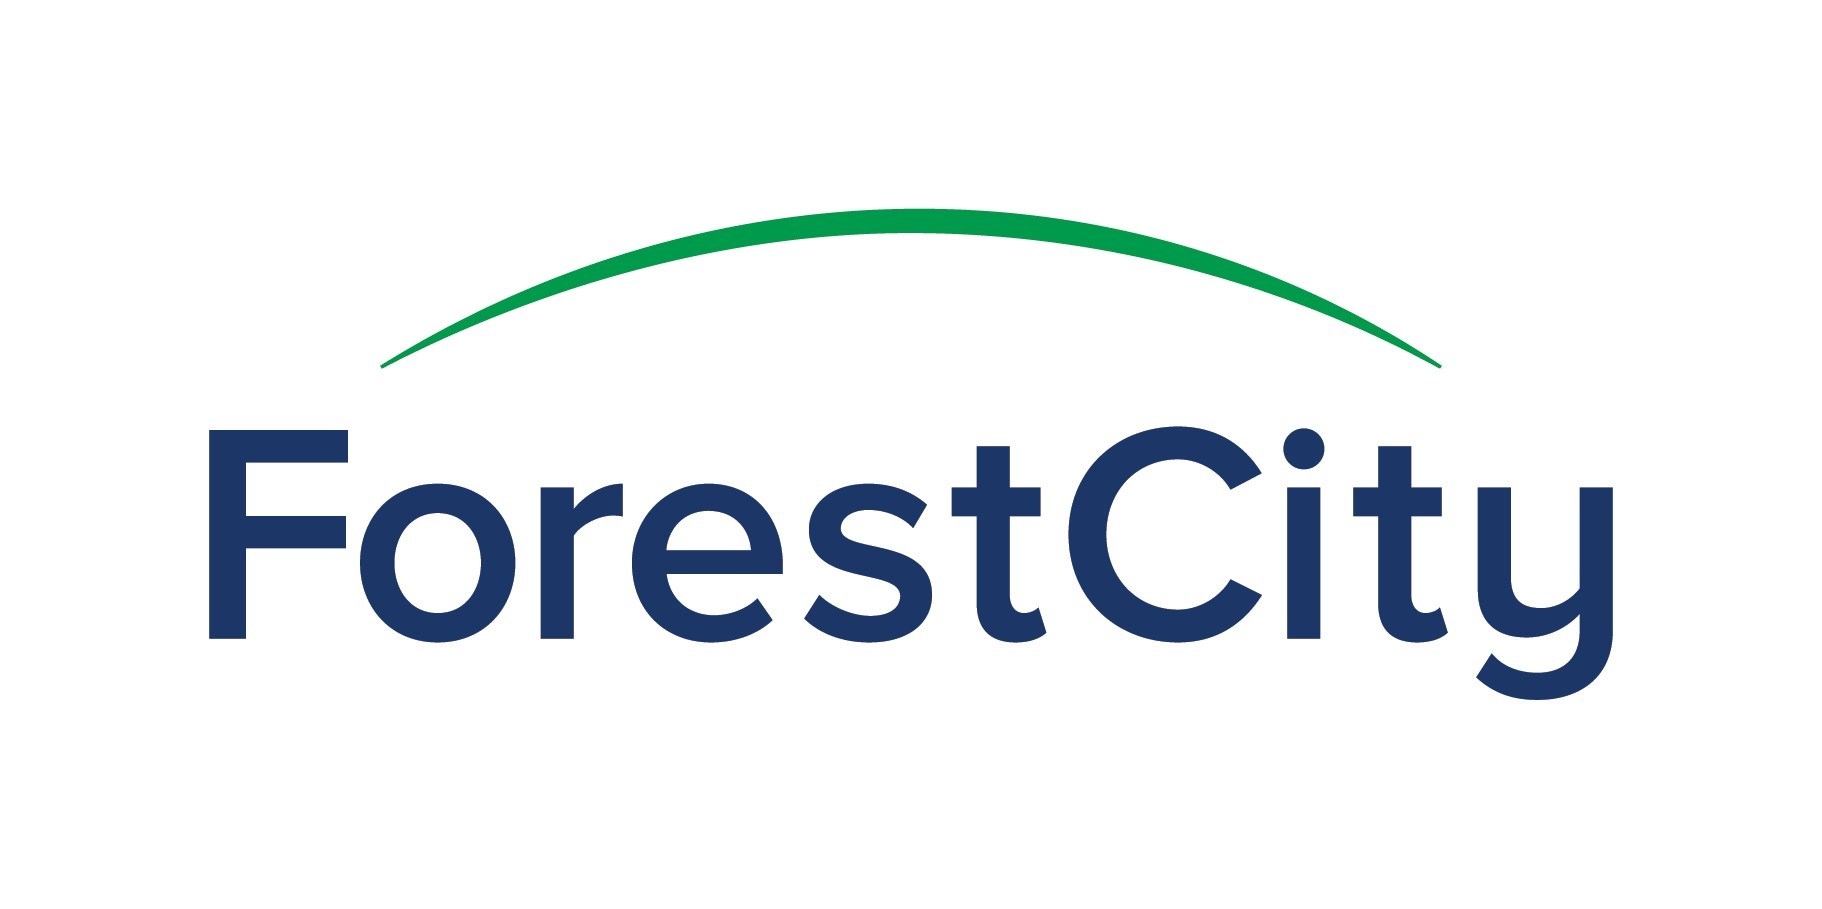 Forest City logo (PRNewsfoto/Forest City Realty Trust, Inc.)